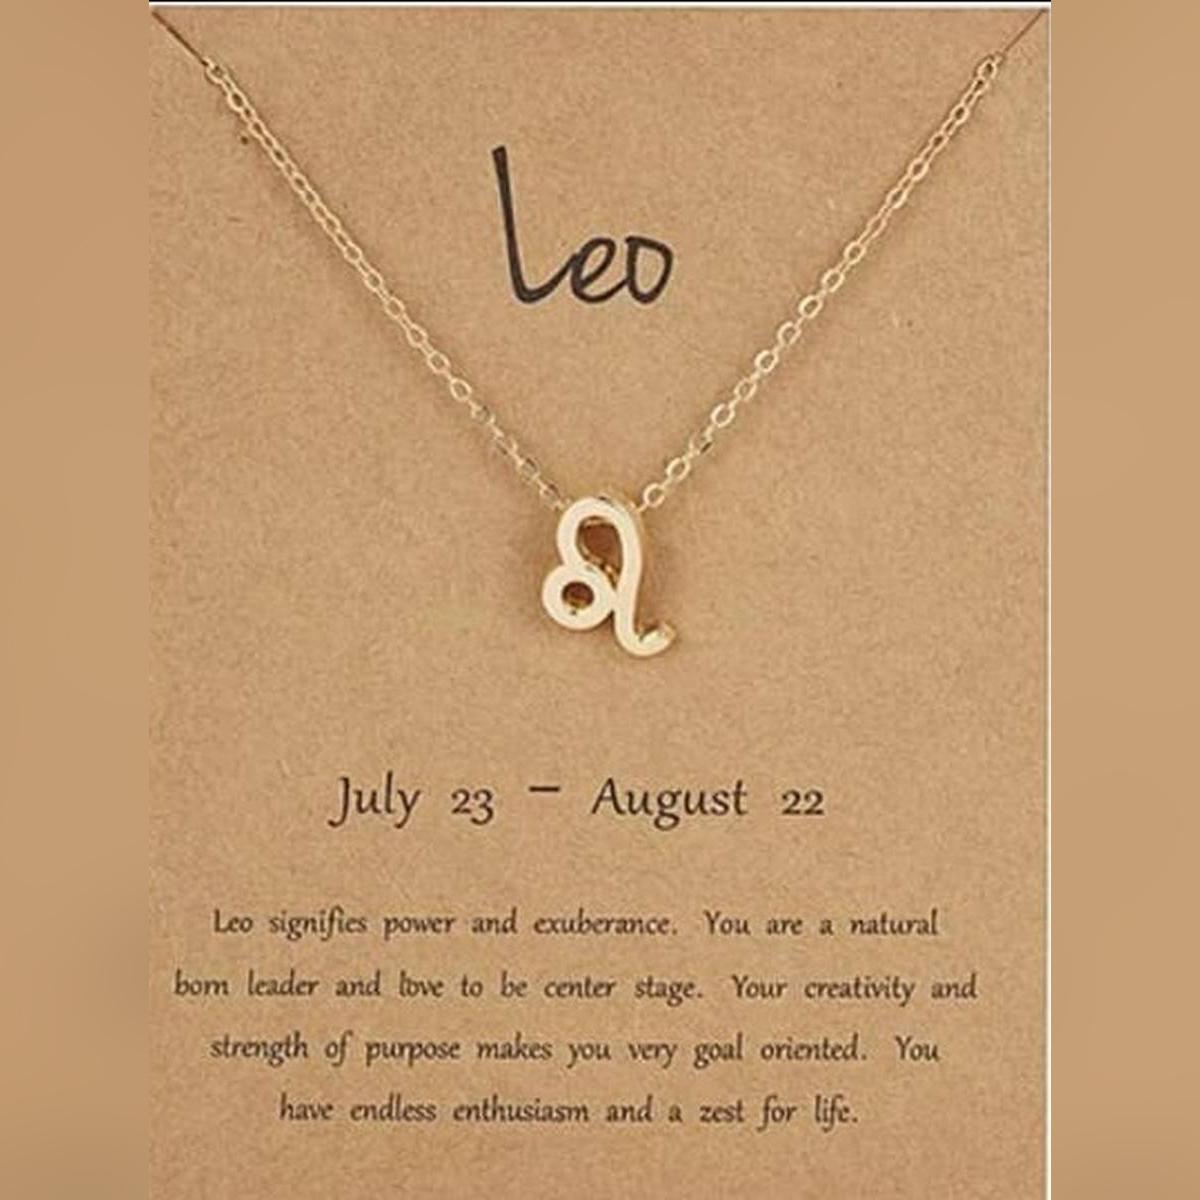 Leo Female Elegant Star Zodiac Sign 12 Constellation Necklaces  Pendant Charm Gold Chain Choker Necklaces for Women Jewelry Cardboard